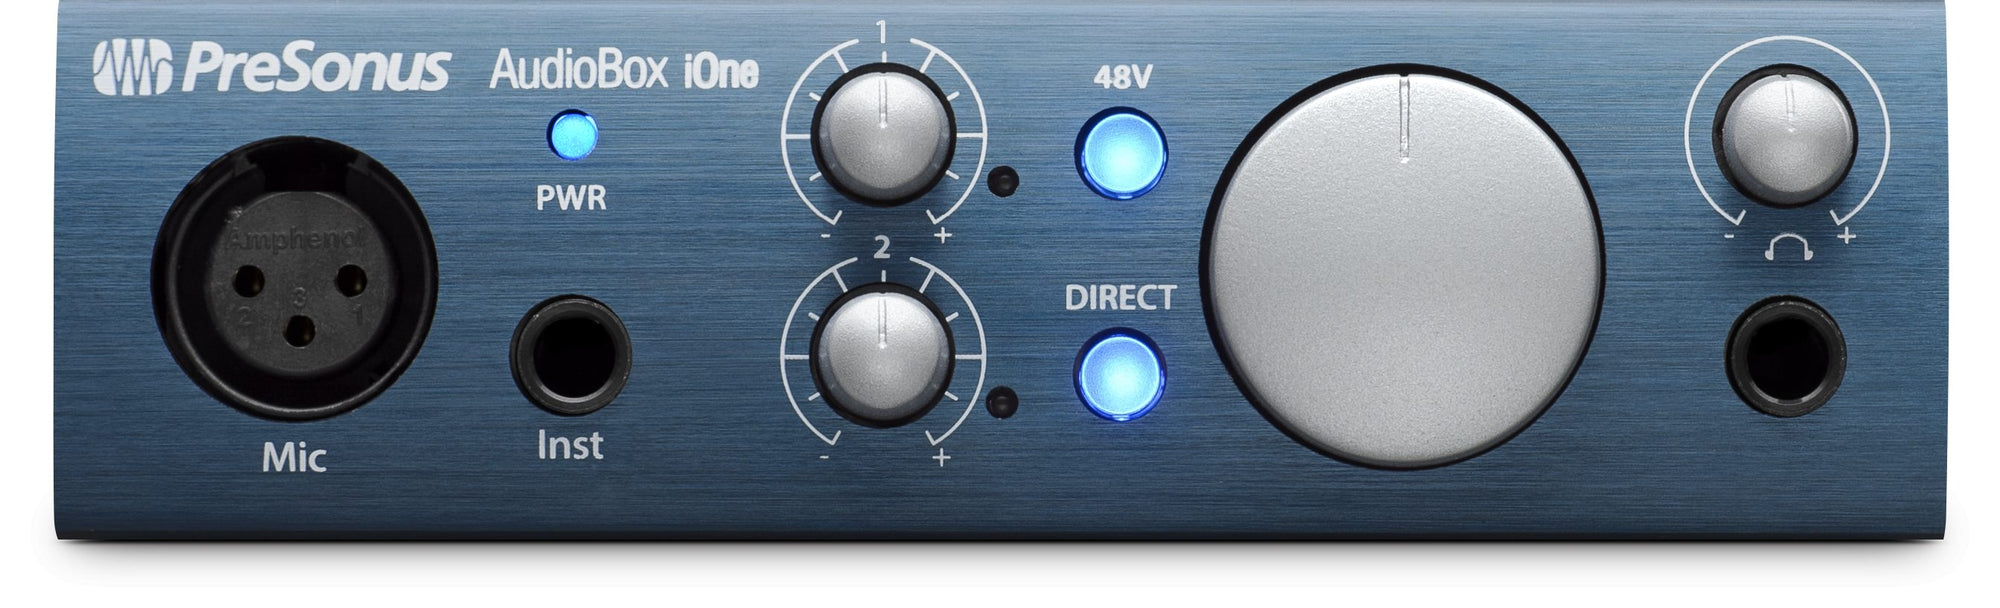 Presonus AudioBox iOne - 305broadcast